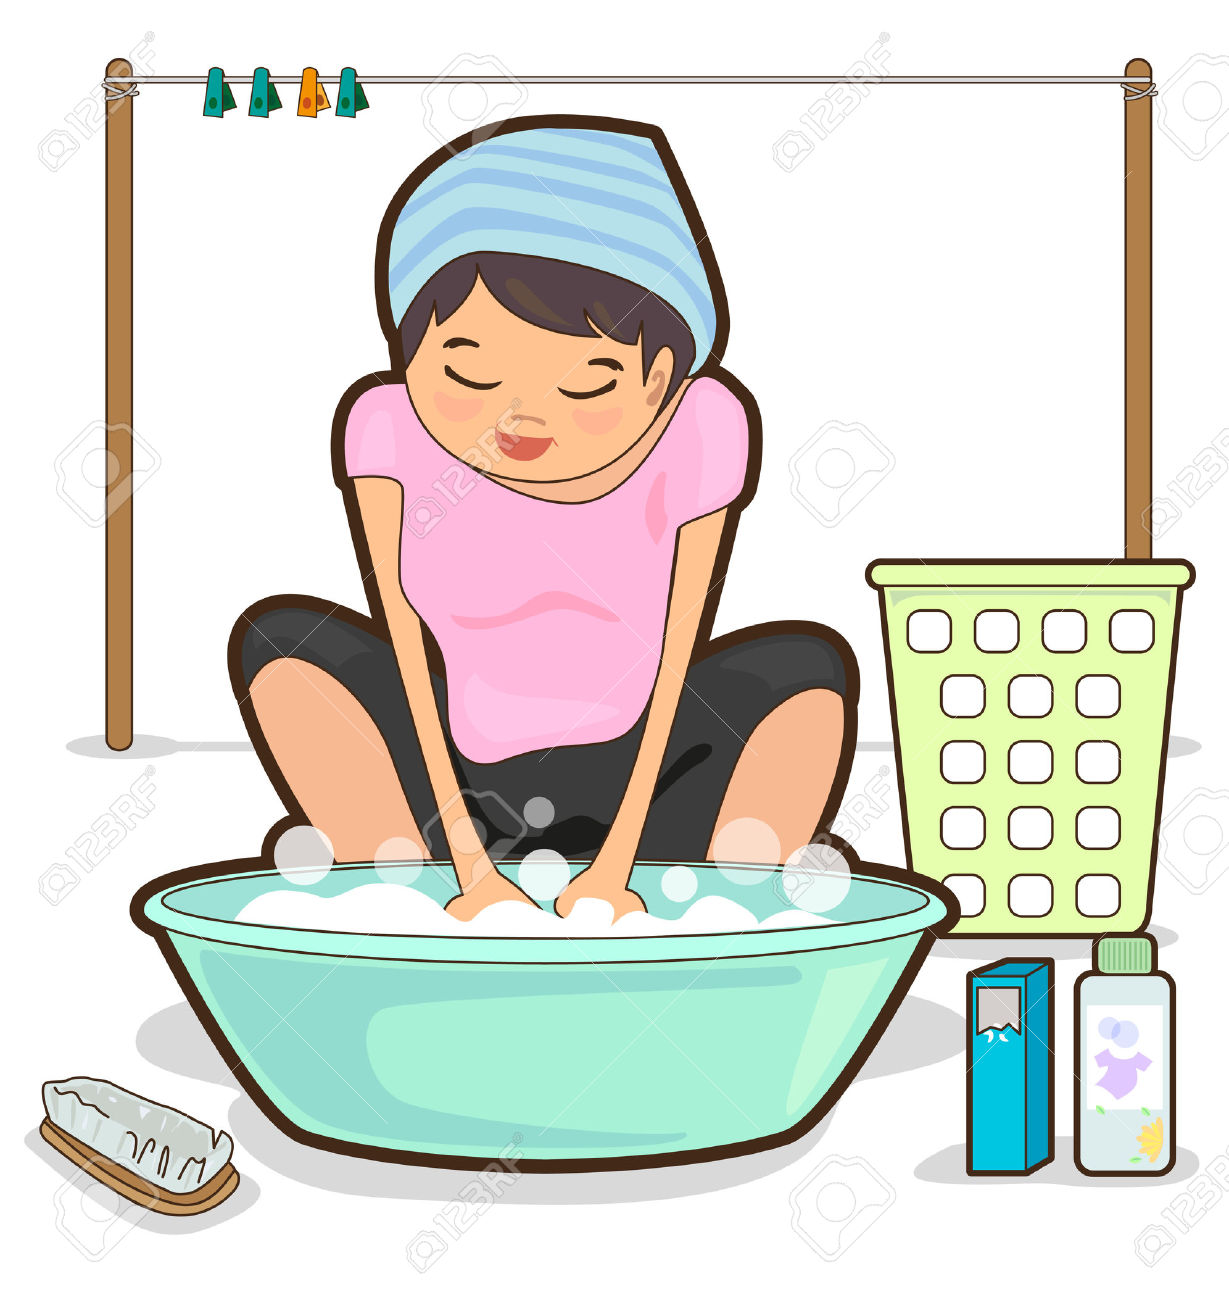 Wash clothes by hand clipart.